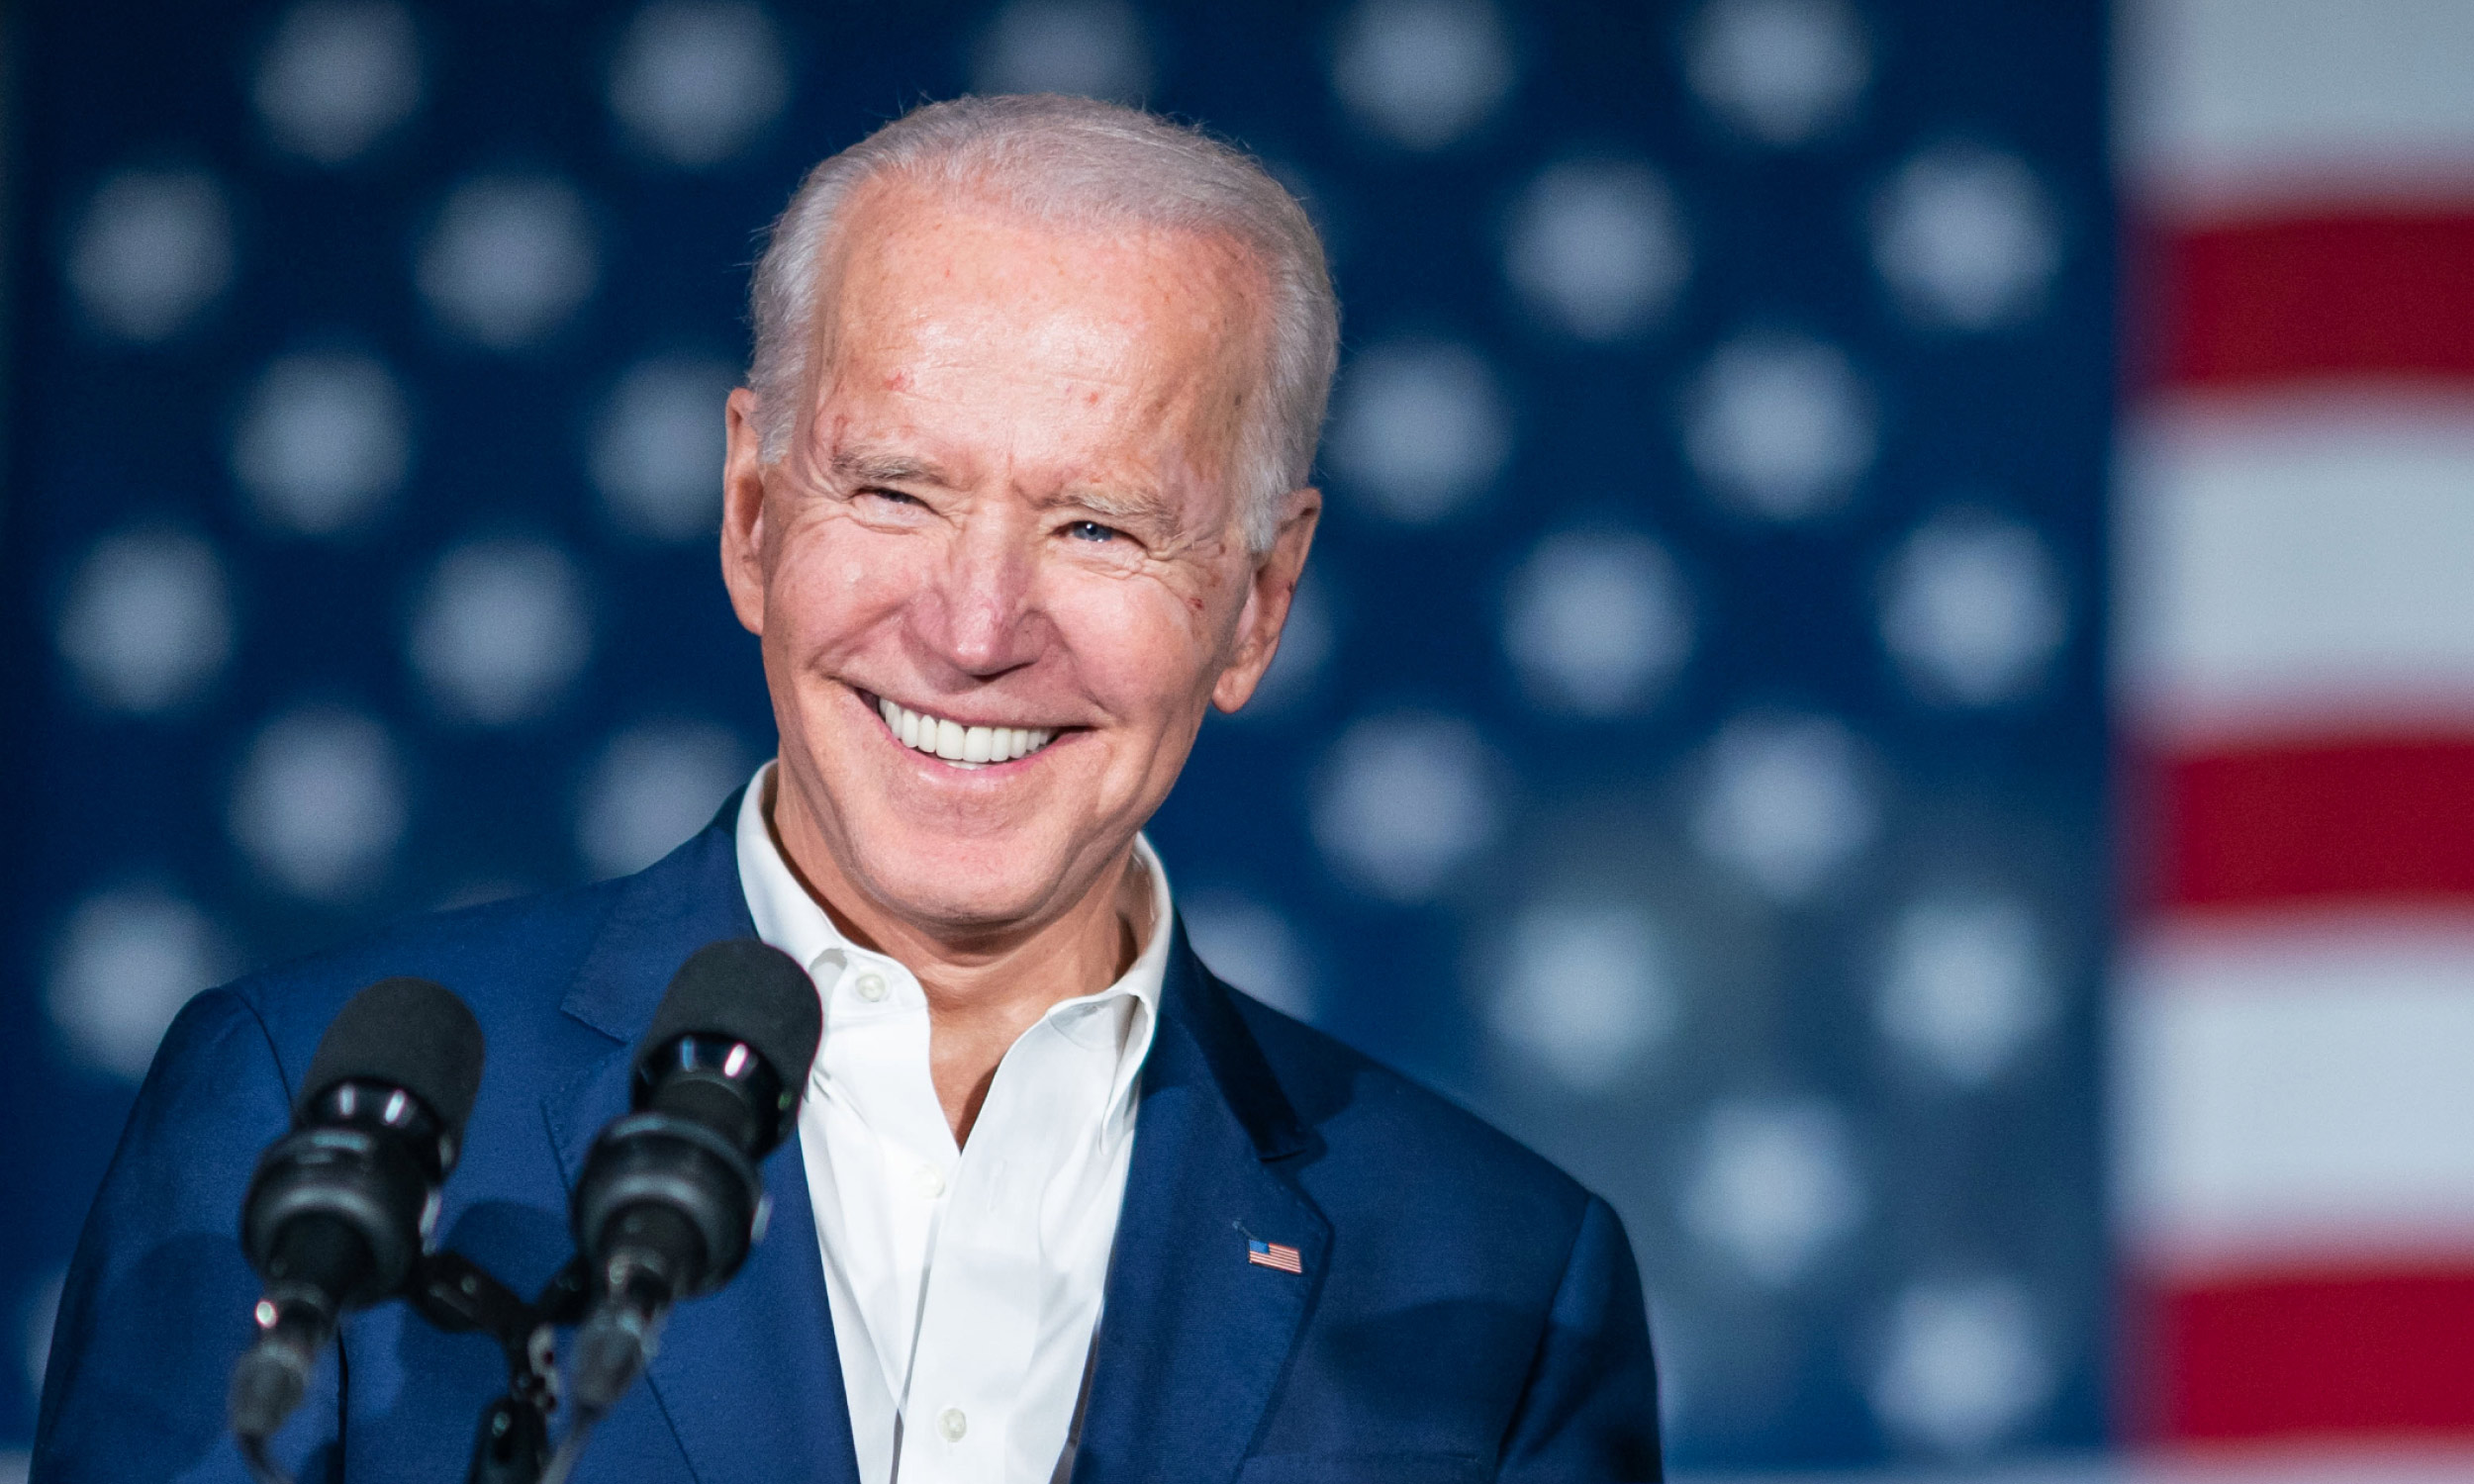 Joe Biden Hails 'Unprecedented' American Unity on .9 Trillion Covid Stimulus